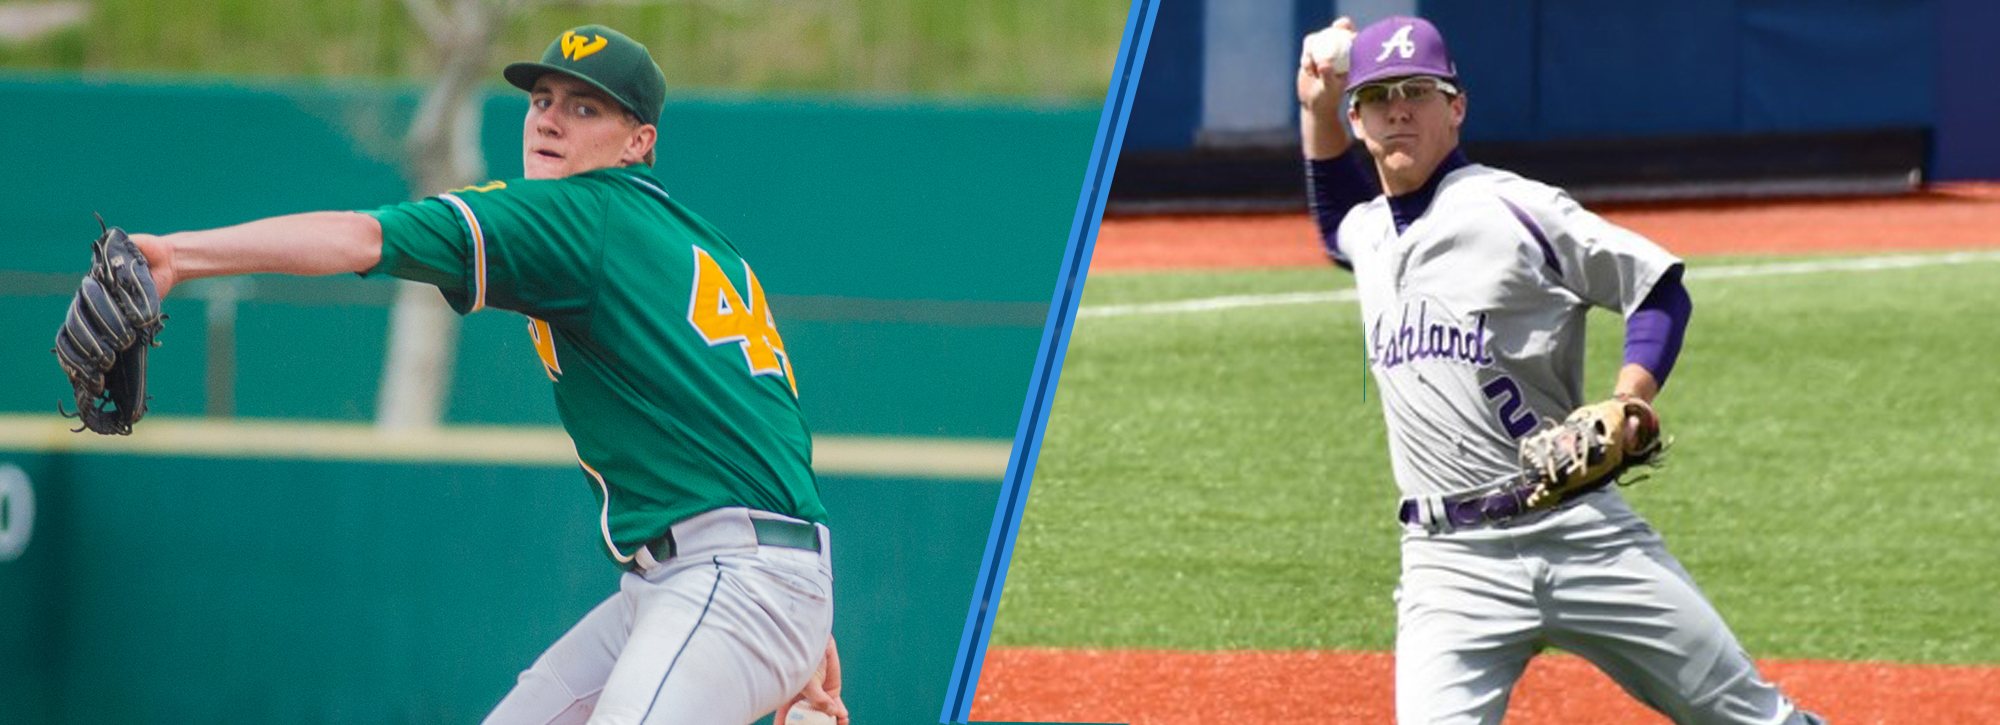 Twelve GLIAC players earn D2CCA all-region honors; Brown named pitcher of the year